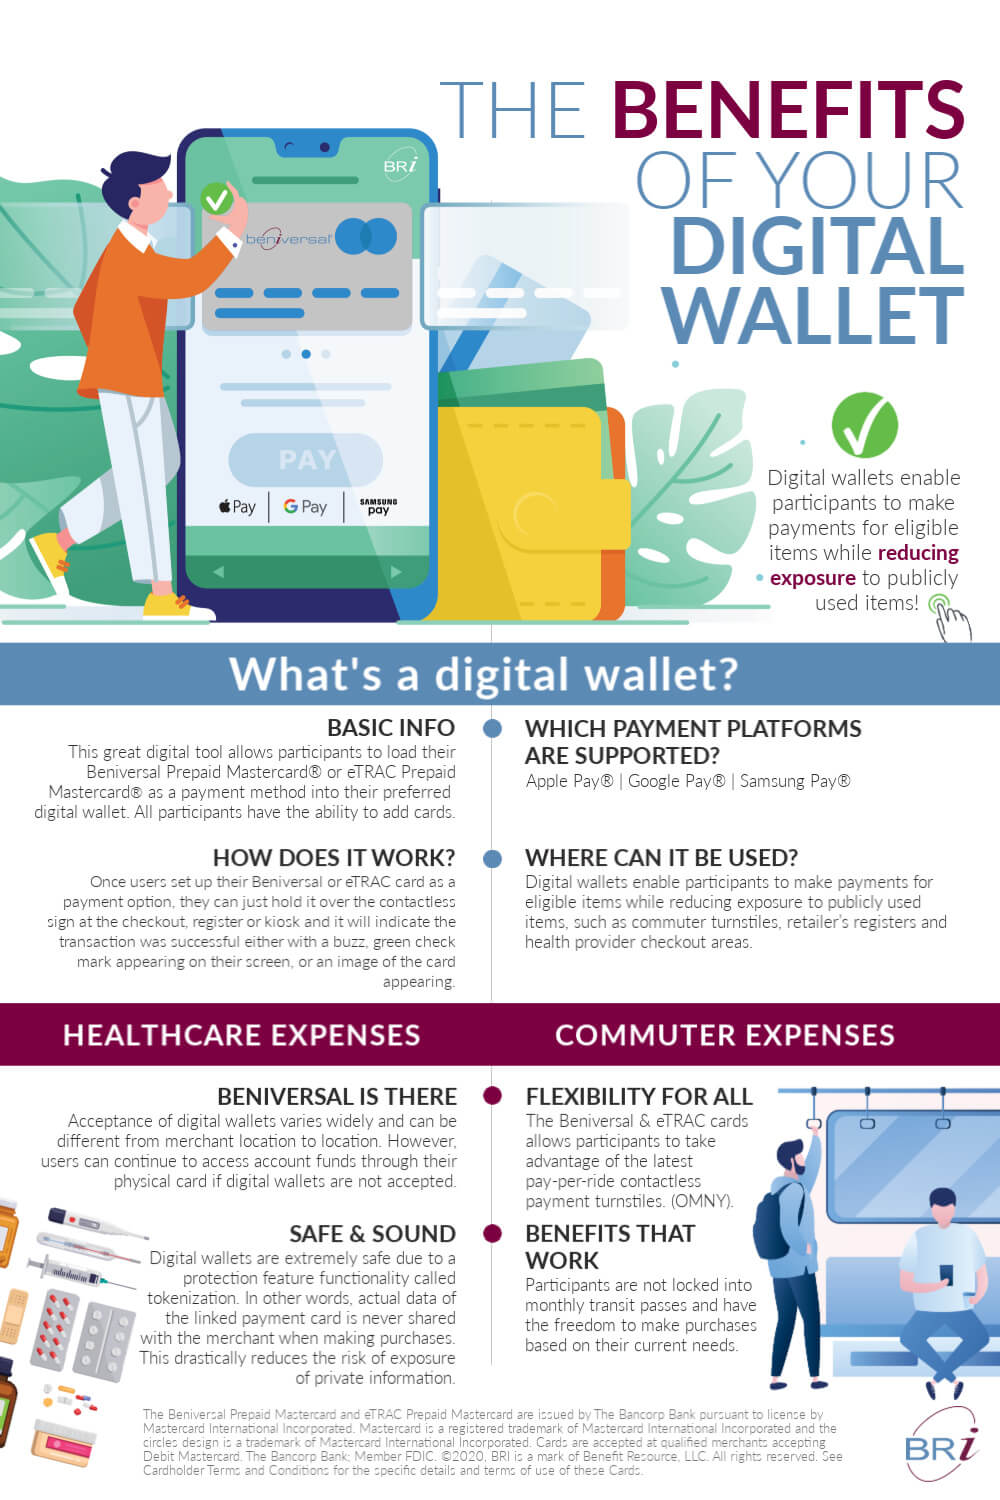 The Benefits of Your Digital Wallet infographic